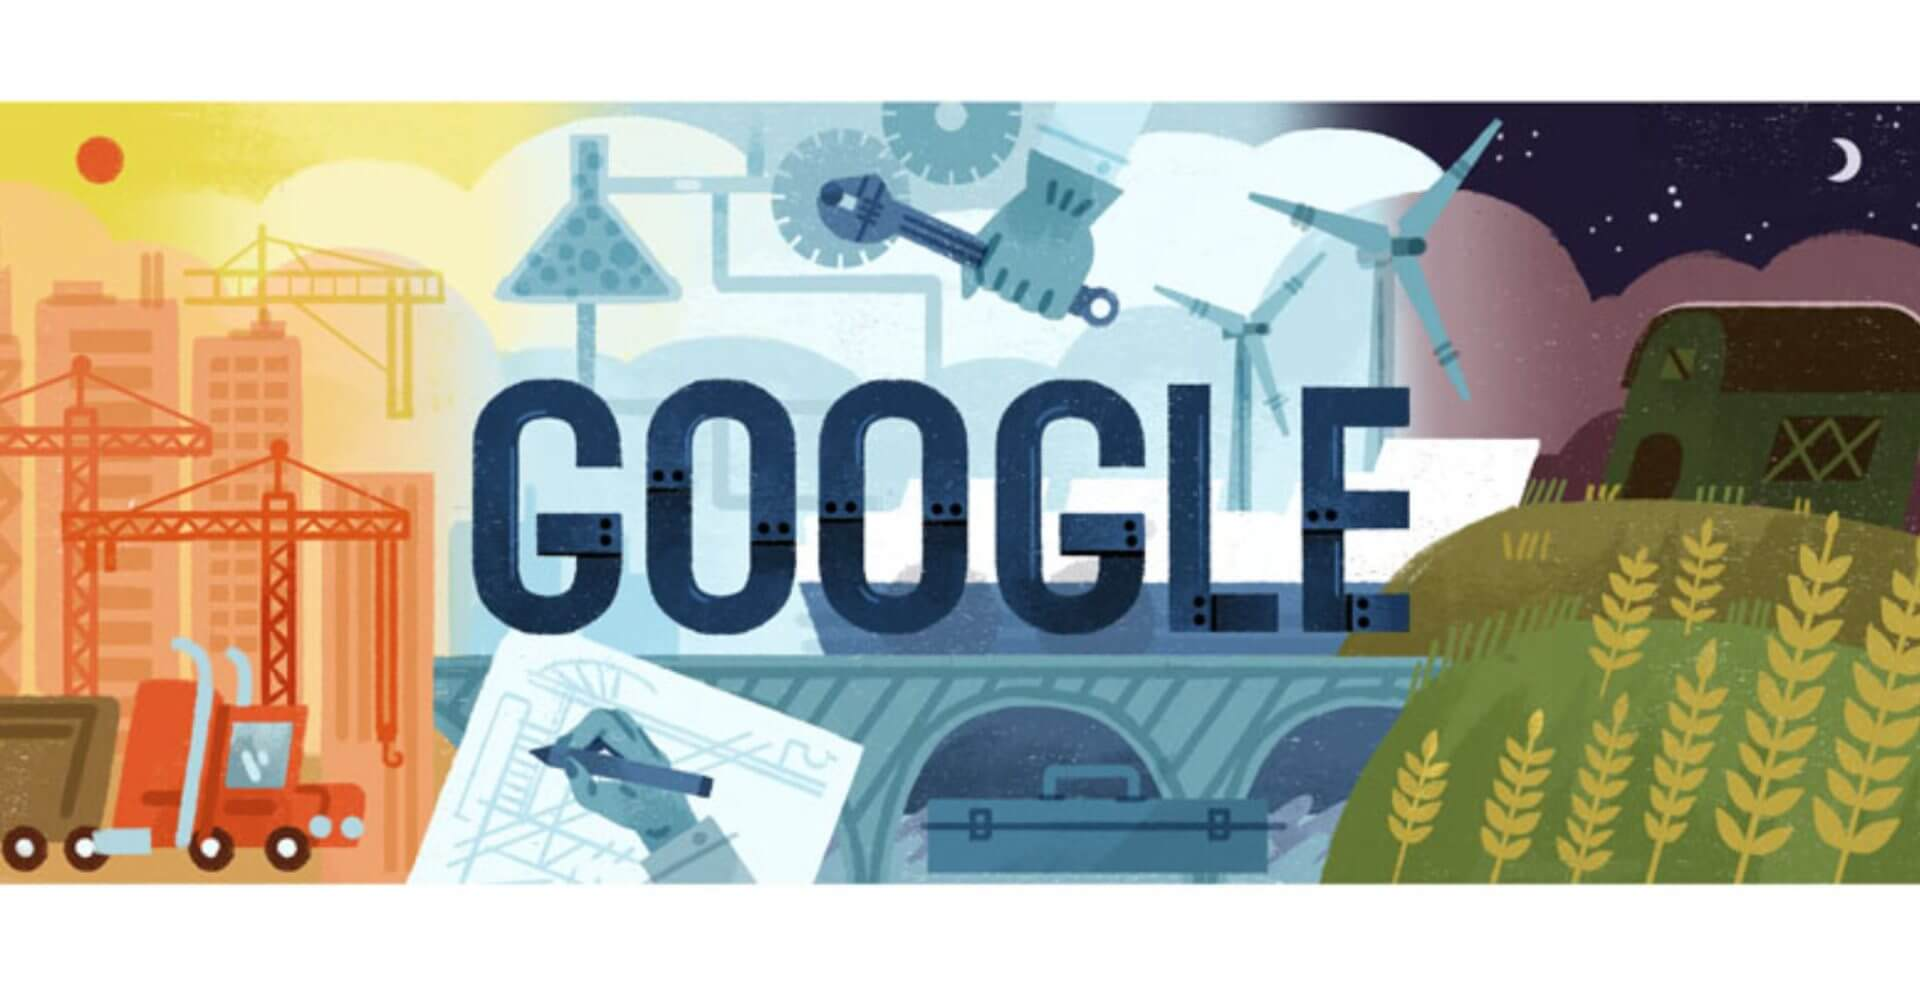 Labor Day Google doodle inspired by art created during The Great Depression